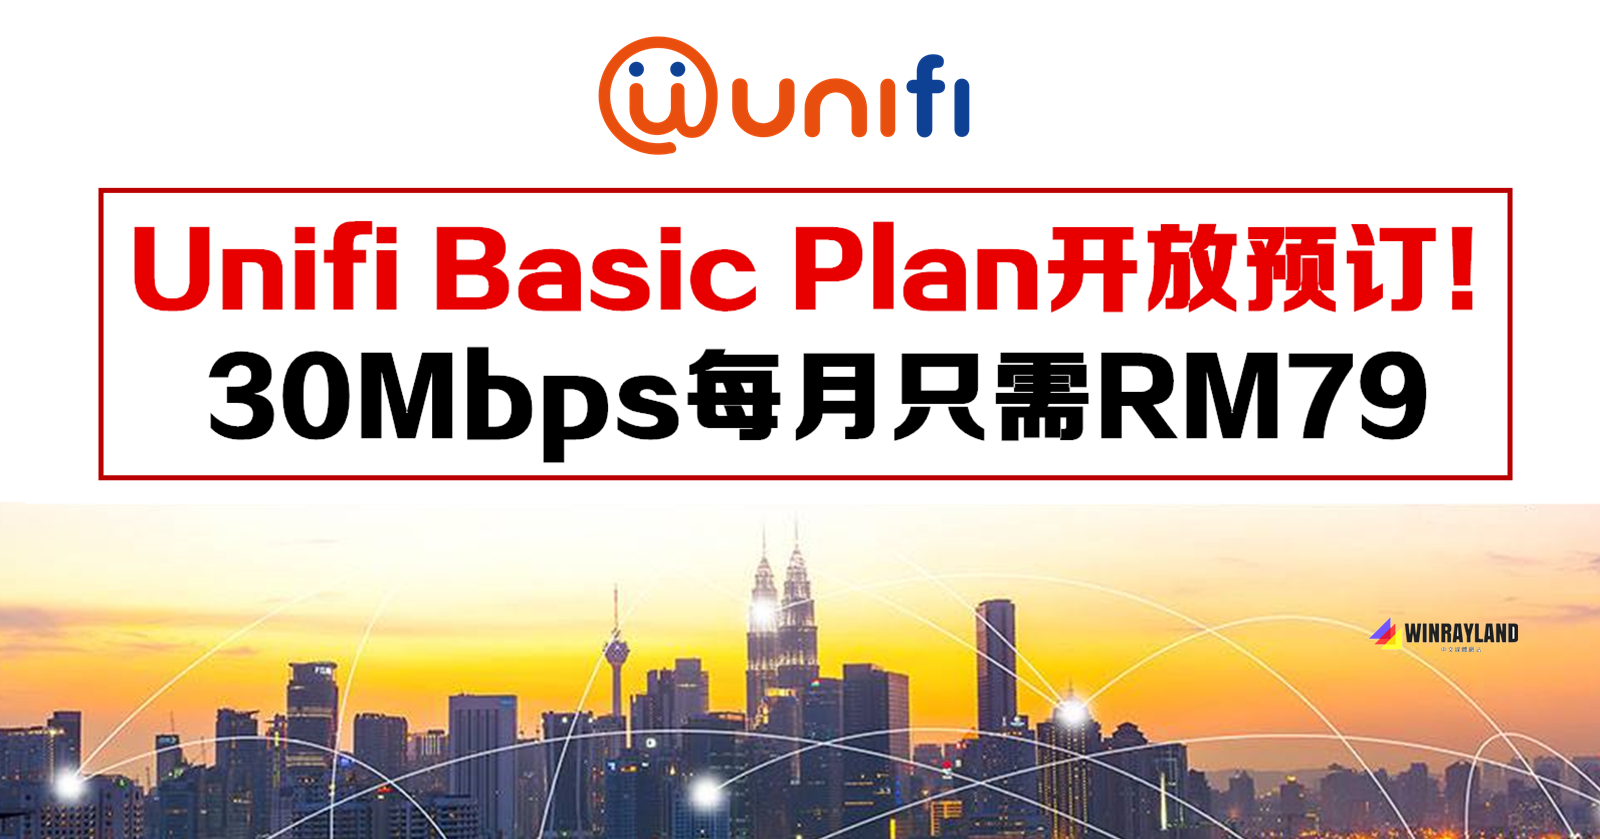 Unifi Basic Plan开放预订!30Mbps每月只需RM79